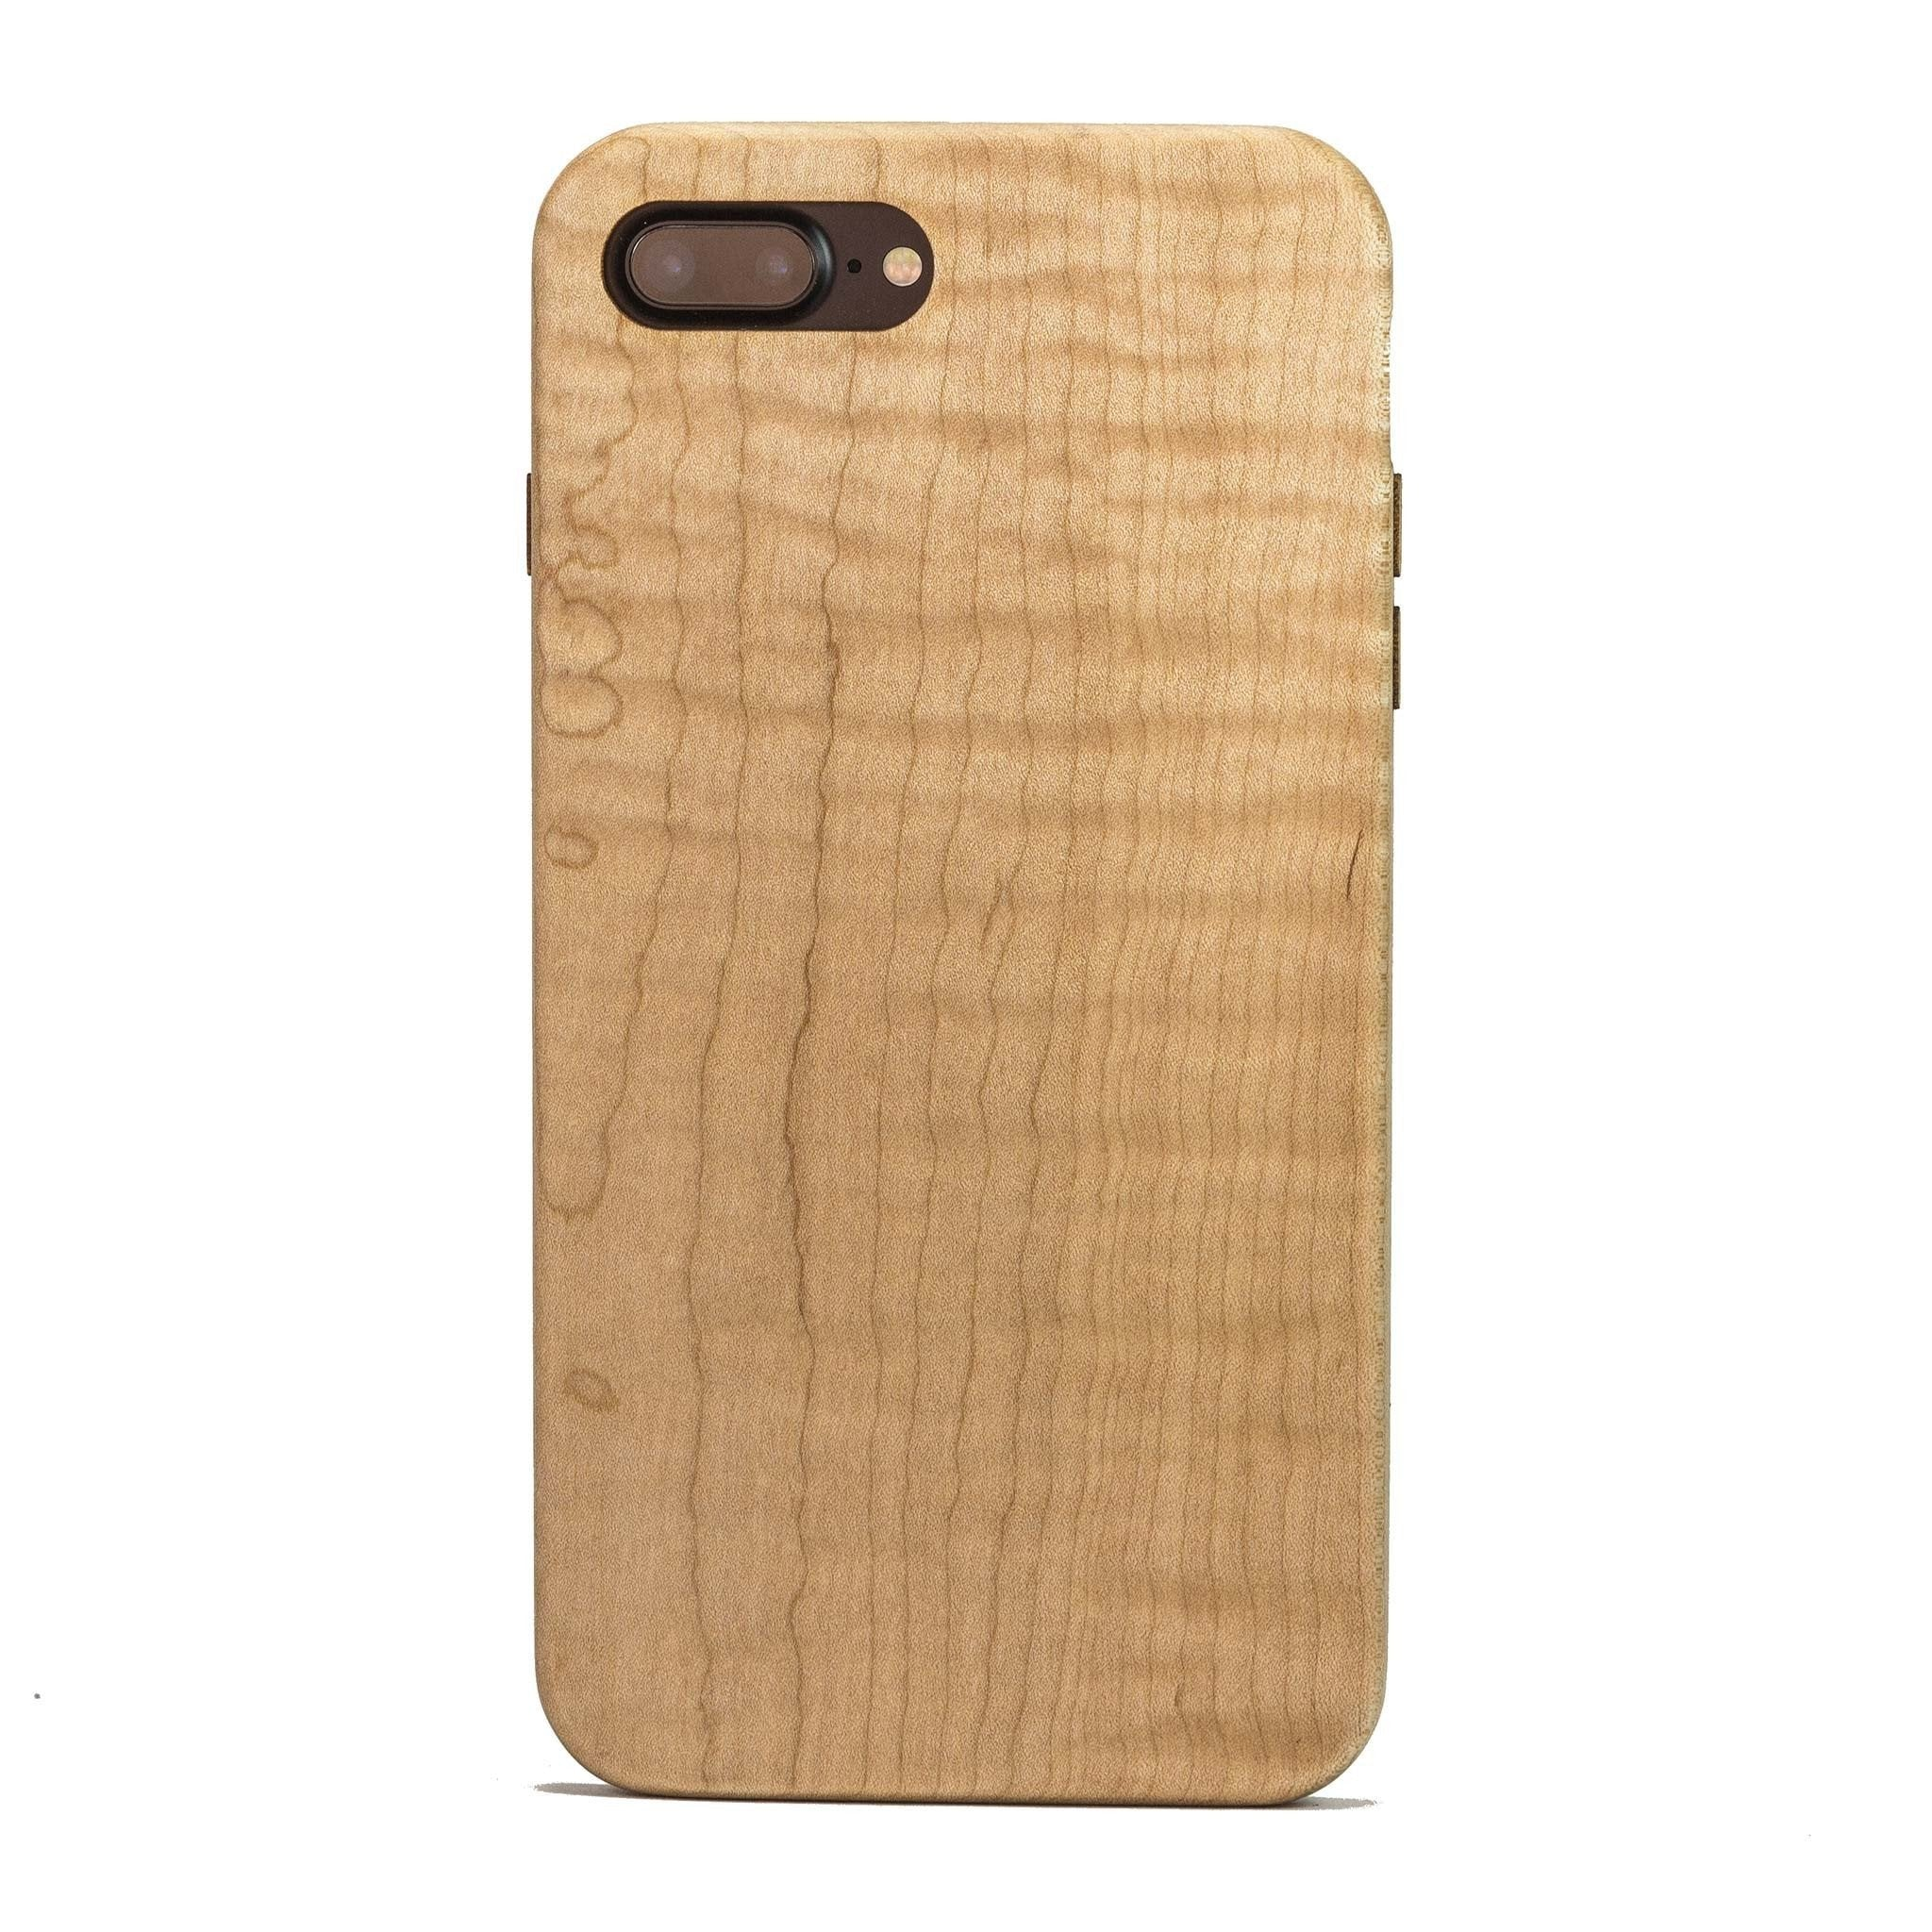 huge selection of 1460a e06da Maple Wood Case for iPhone 8 Plus